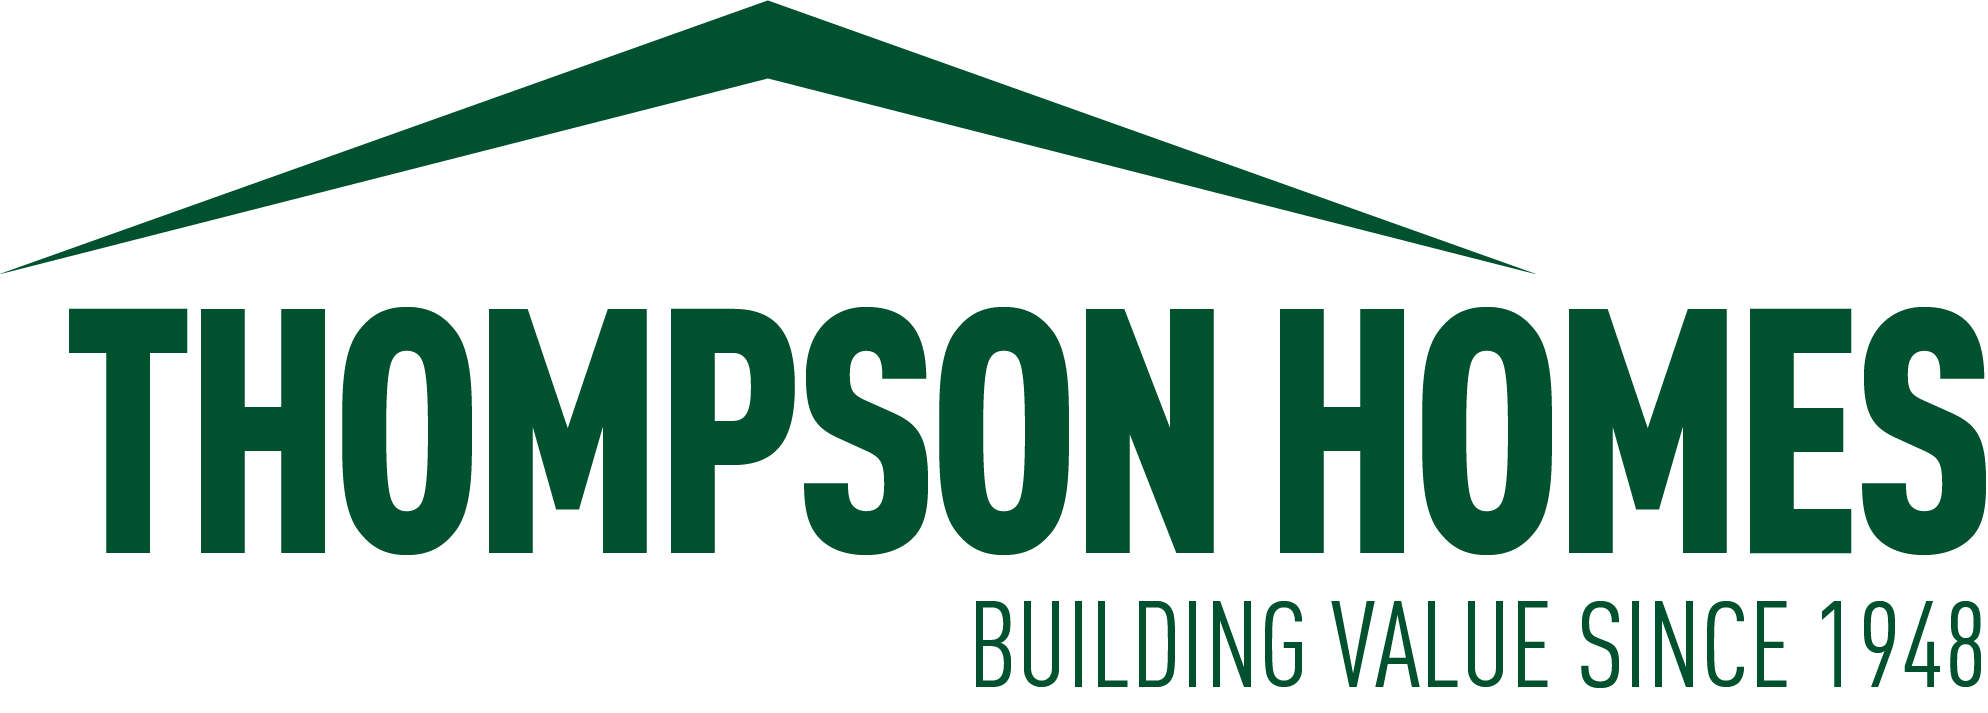 THOMPSON Homes Logo (002).png